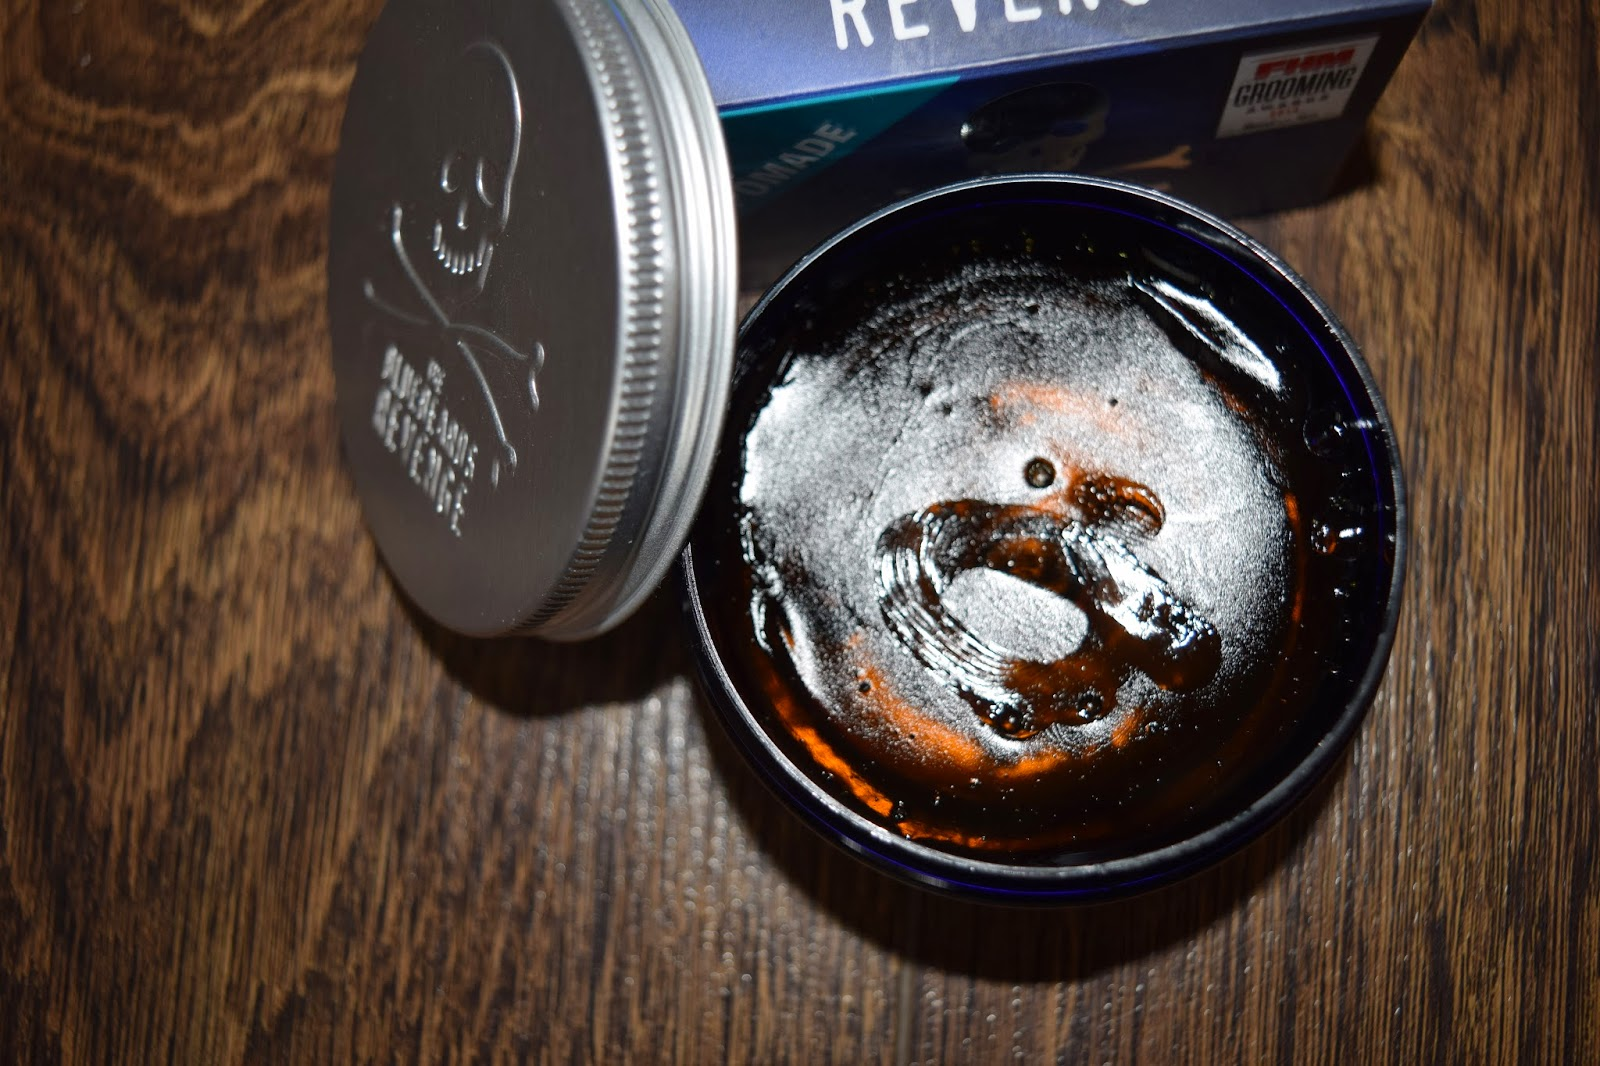 The Panic Room presents The Bluebeards Revenge Pomade